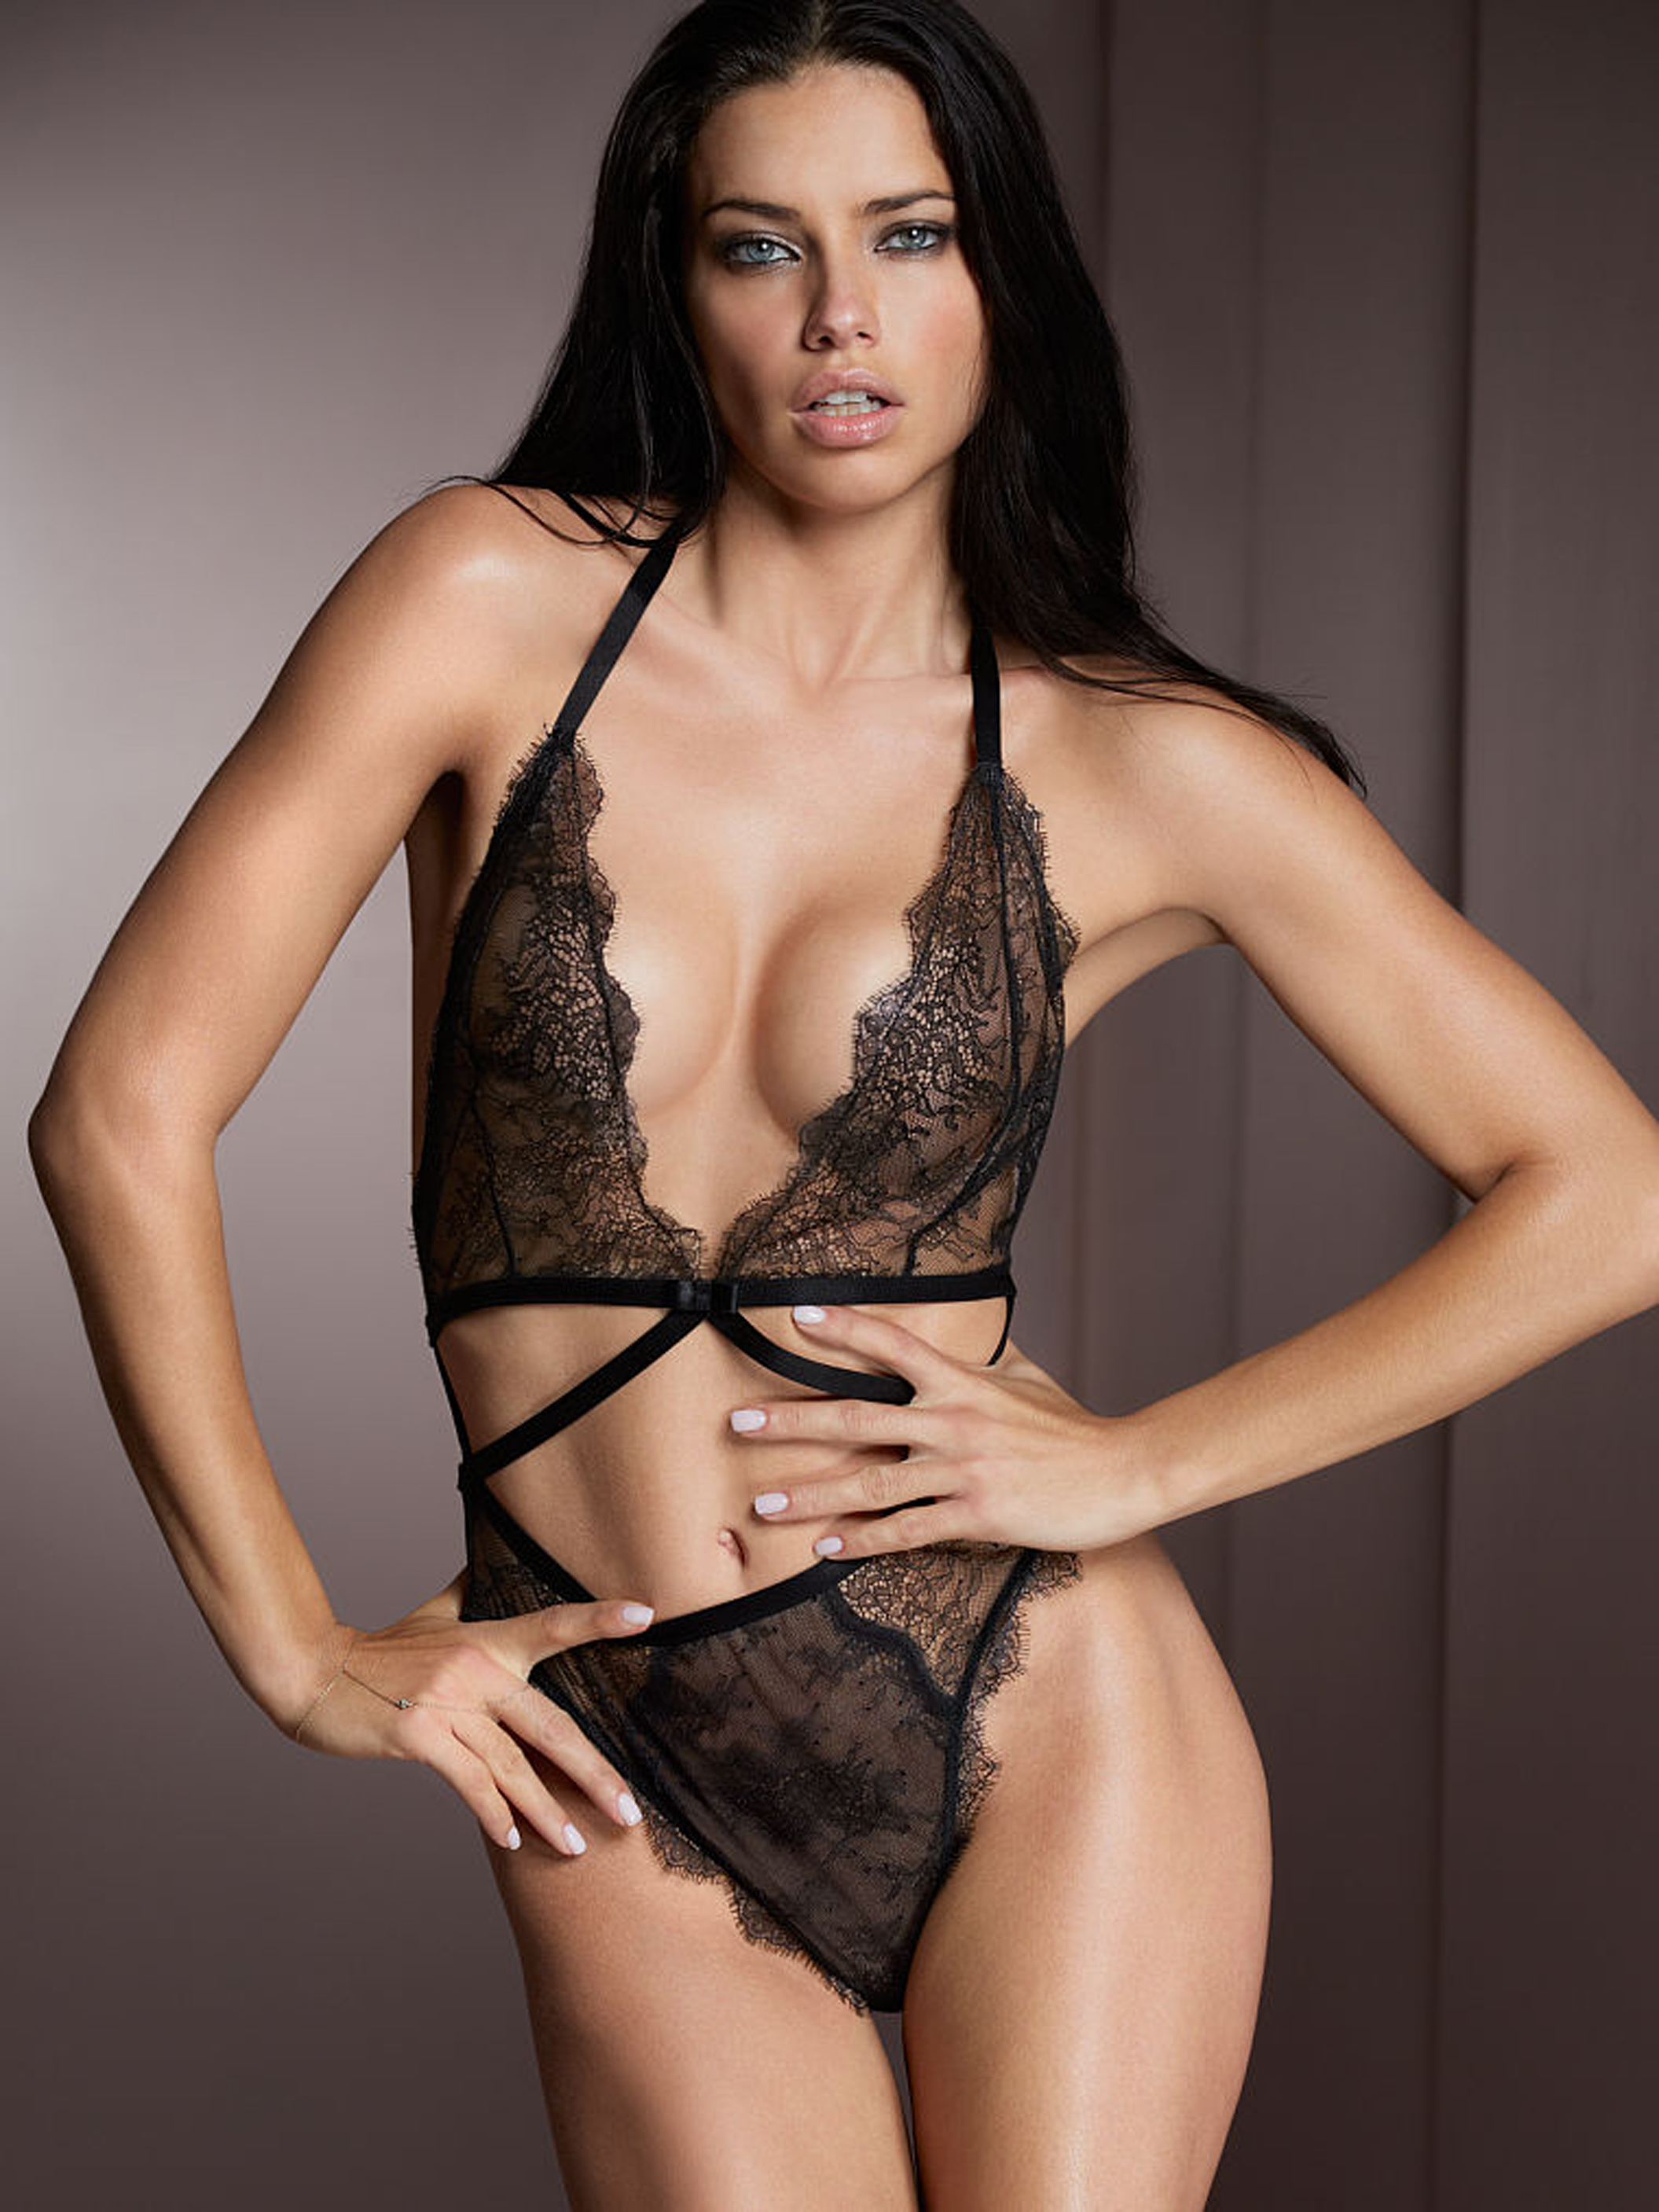 hot model in sexy lingerie - Adriana lima